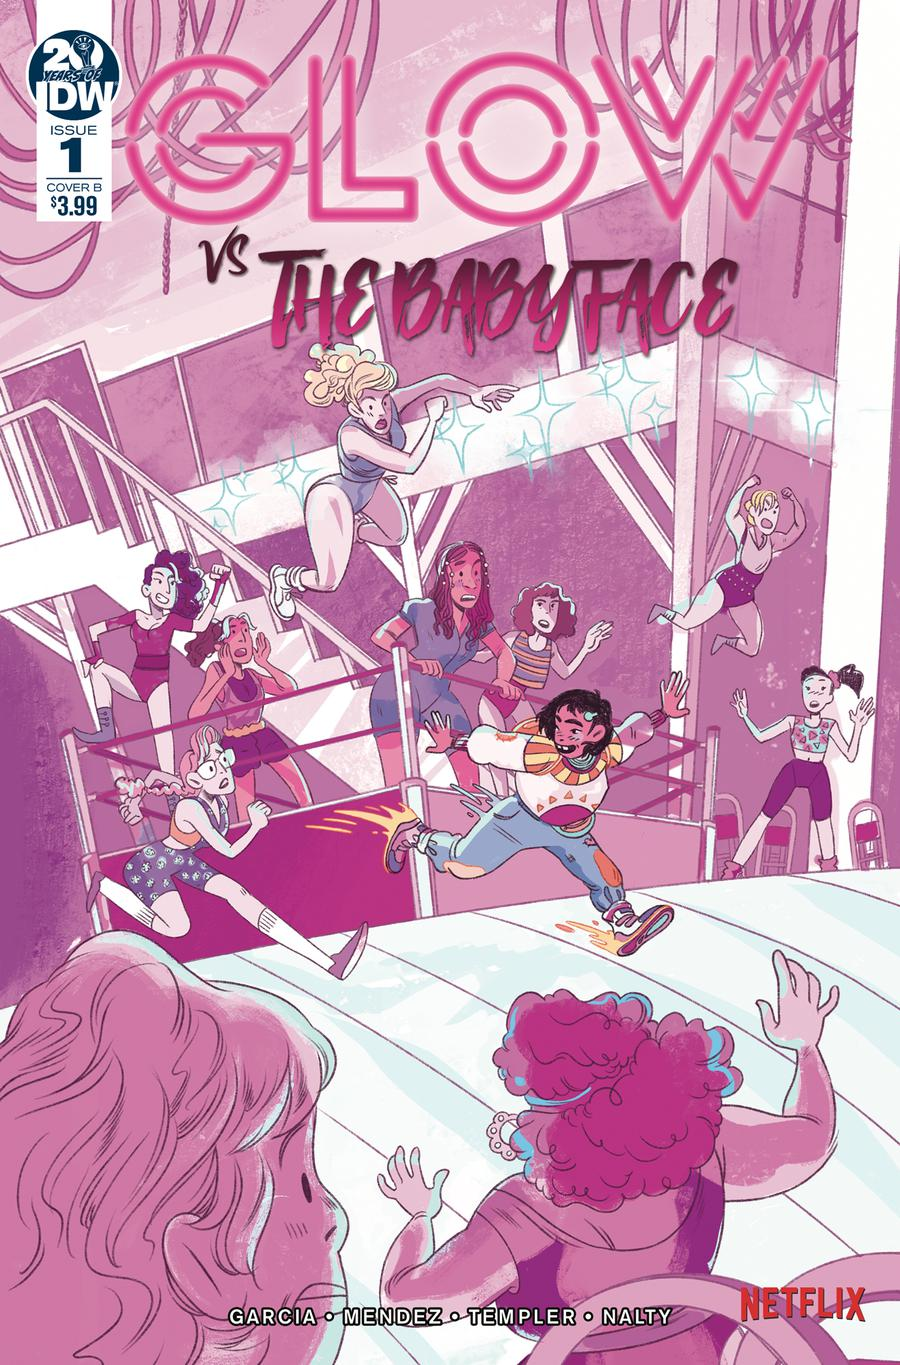 GLOW vs The Babyface #1 Cover B Variant Nicole Goux Cover